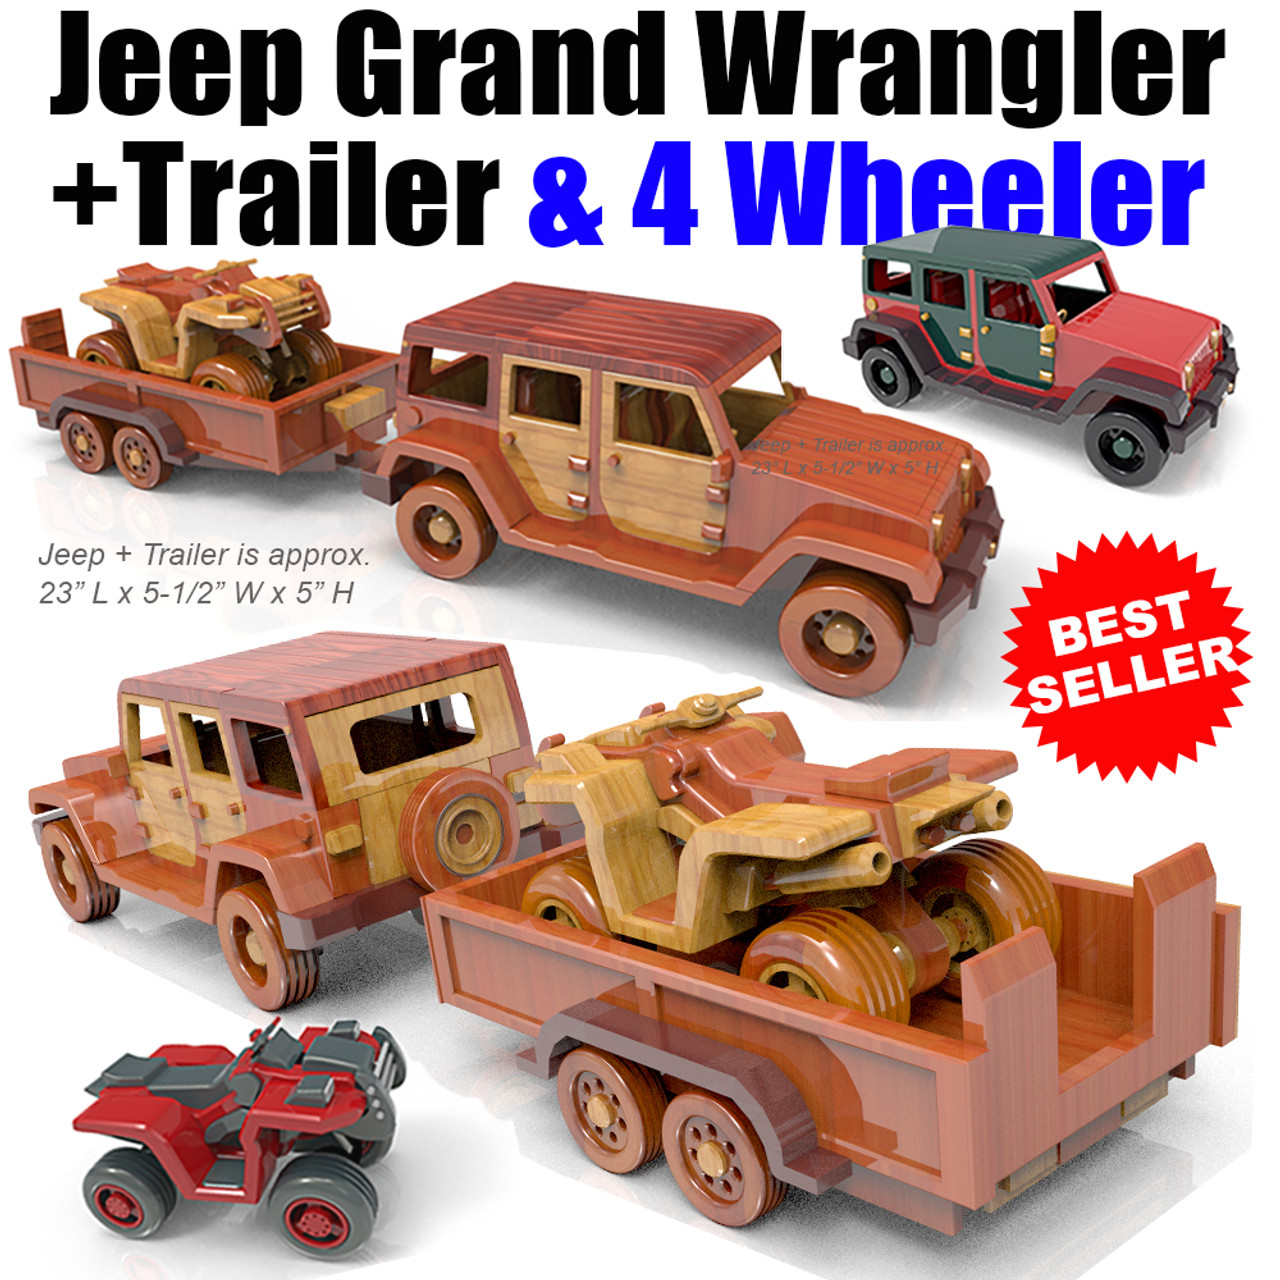 jeep grand wrangler + trailer & 4-wheeler wood toy plans (2 pdf downloads)